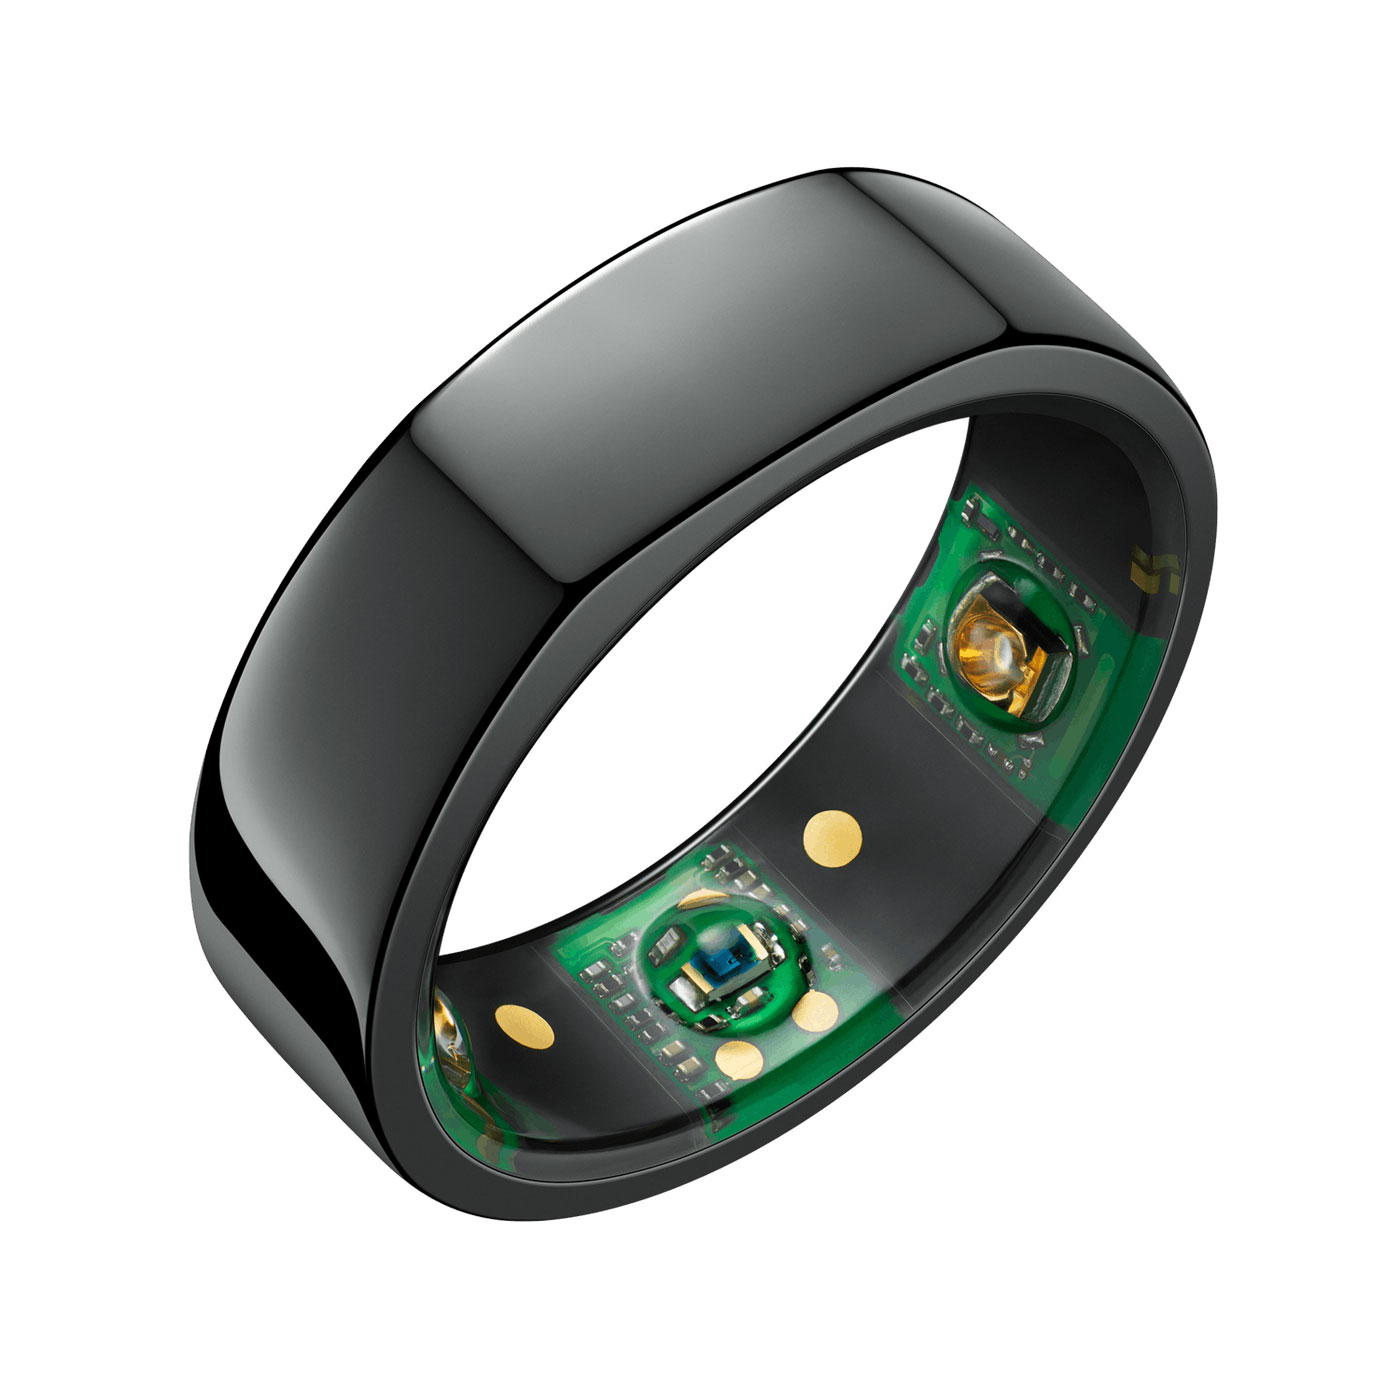 Mother's day gift ideas - Oura Ring